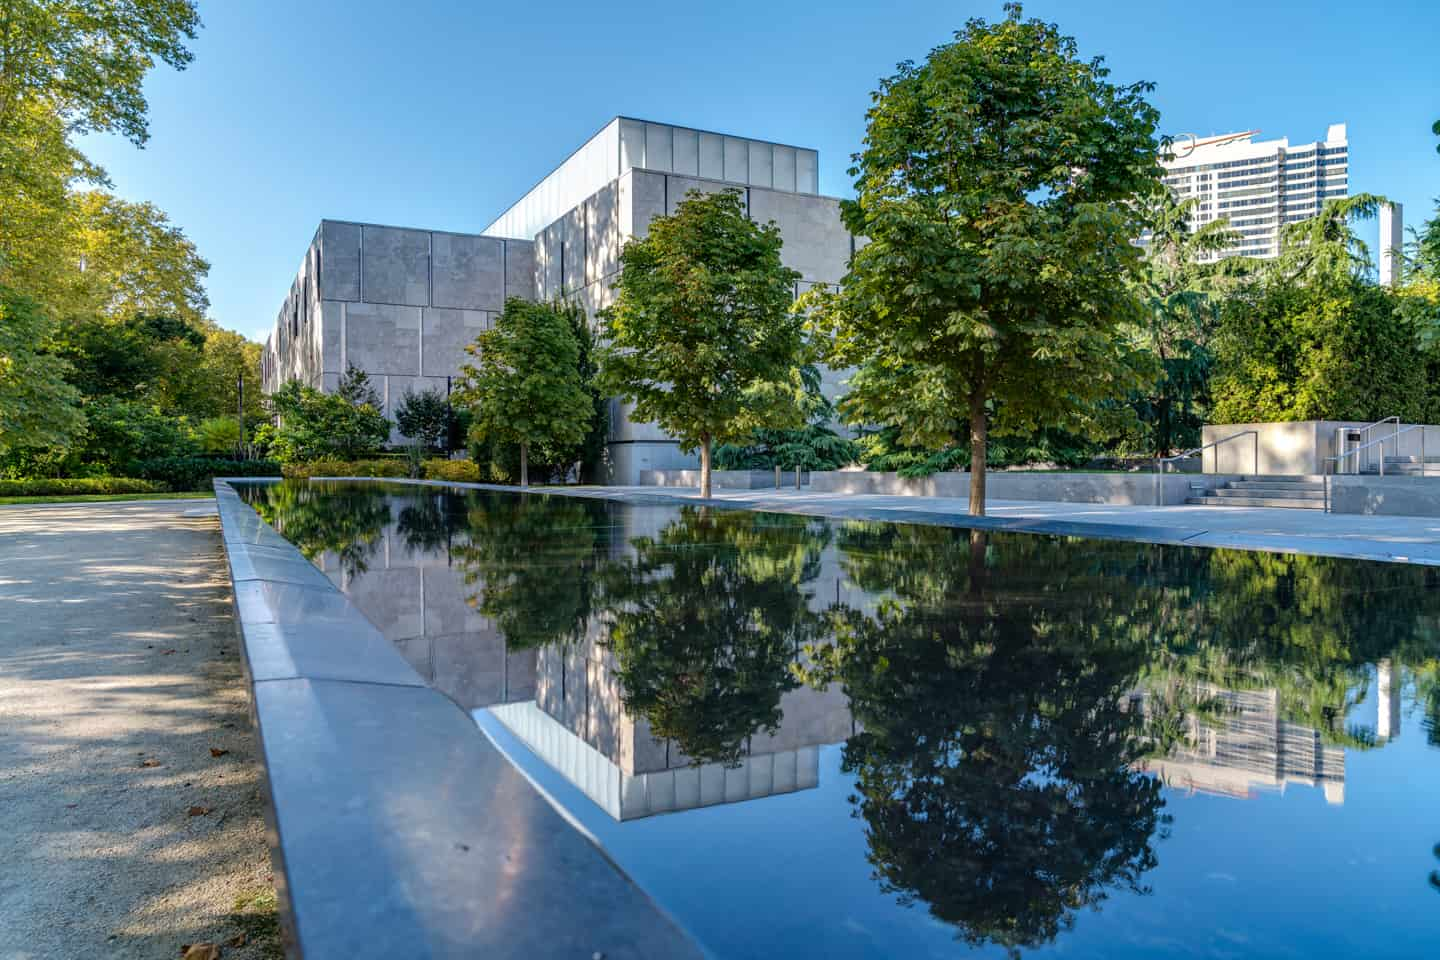 Photo of Philadelphia Landmark - The Barnes Foundation Museum